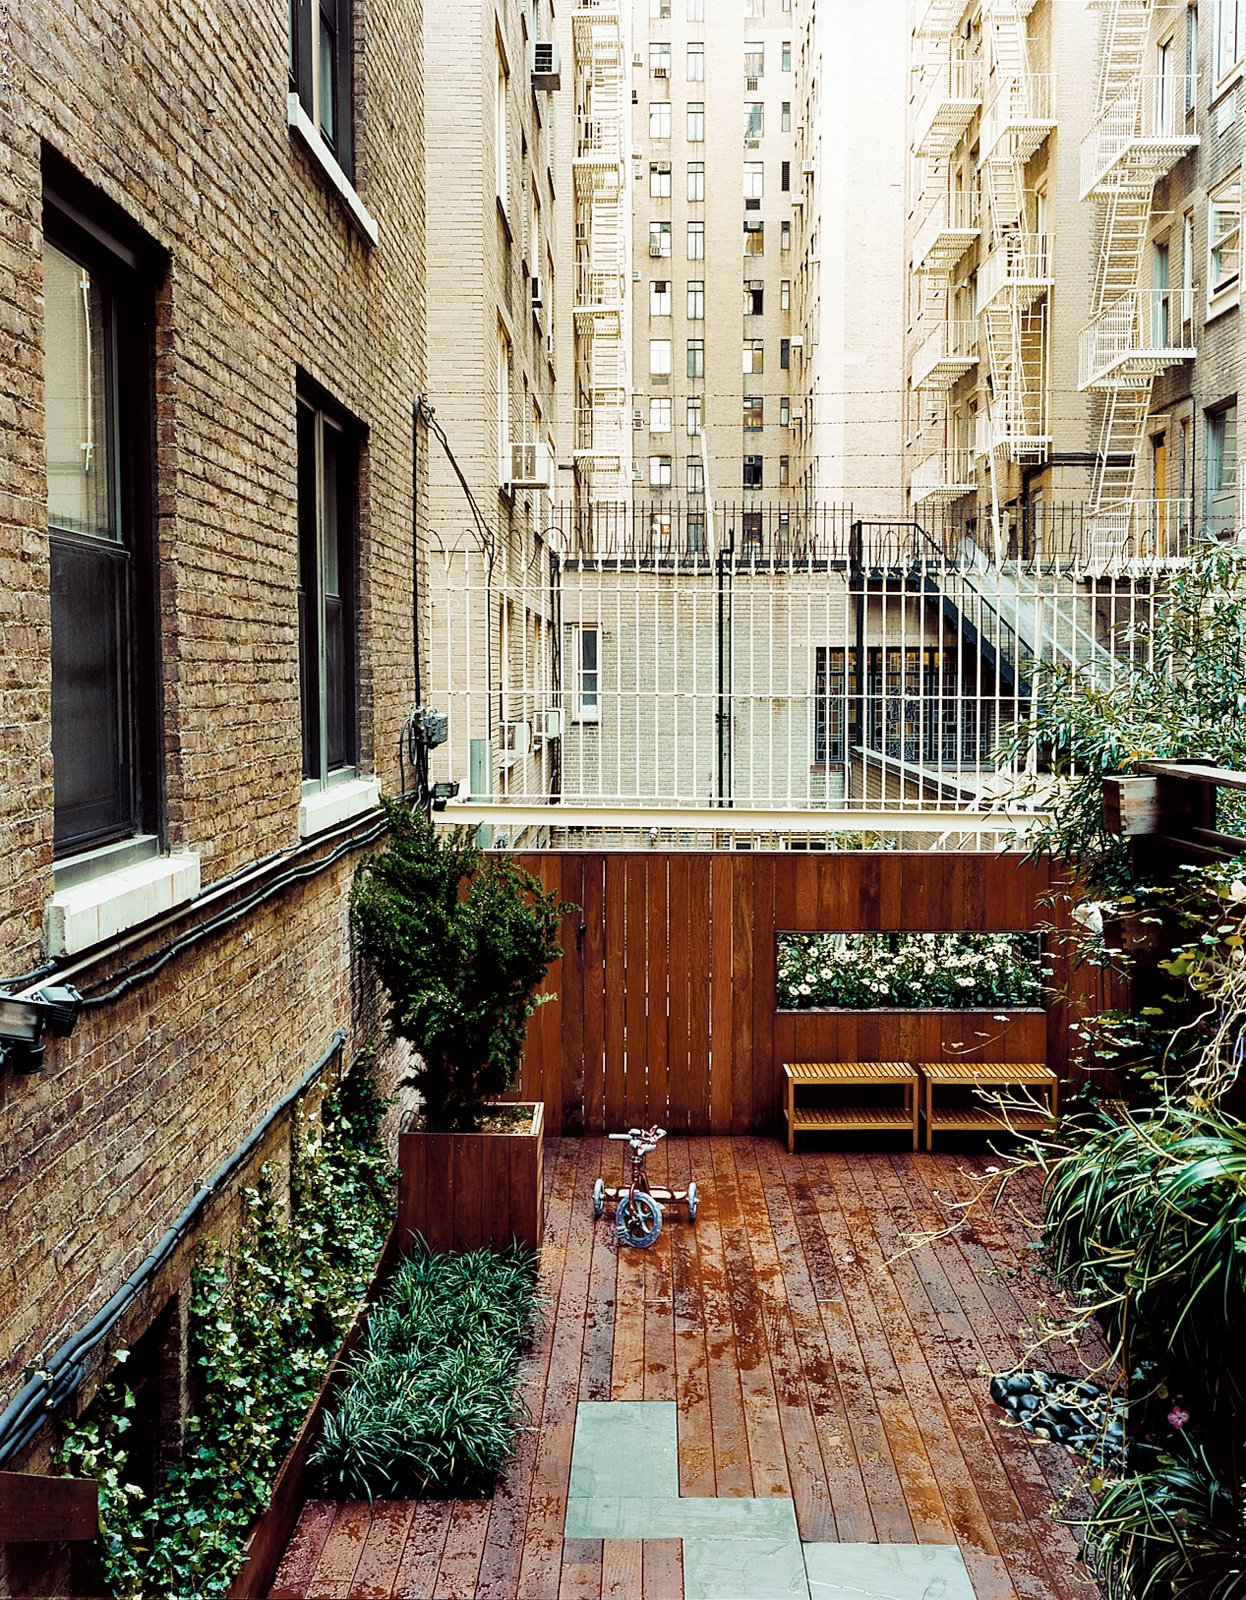 The Zizmors installed a 16-foot-wide deck for playing and grilling, and lined it with hostas, Hollywood juniper, and bamboo. Outdoor Living in NYC - Photo 5 of 11